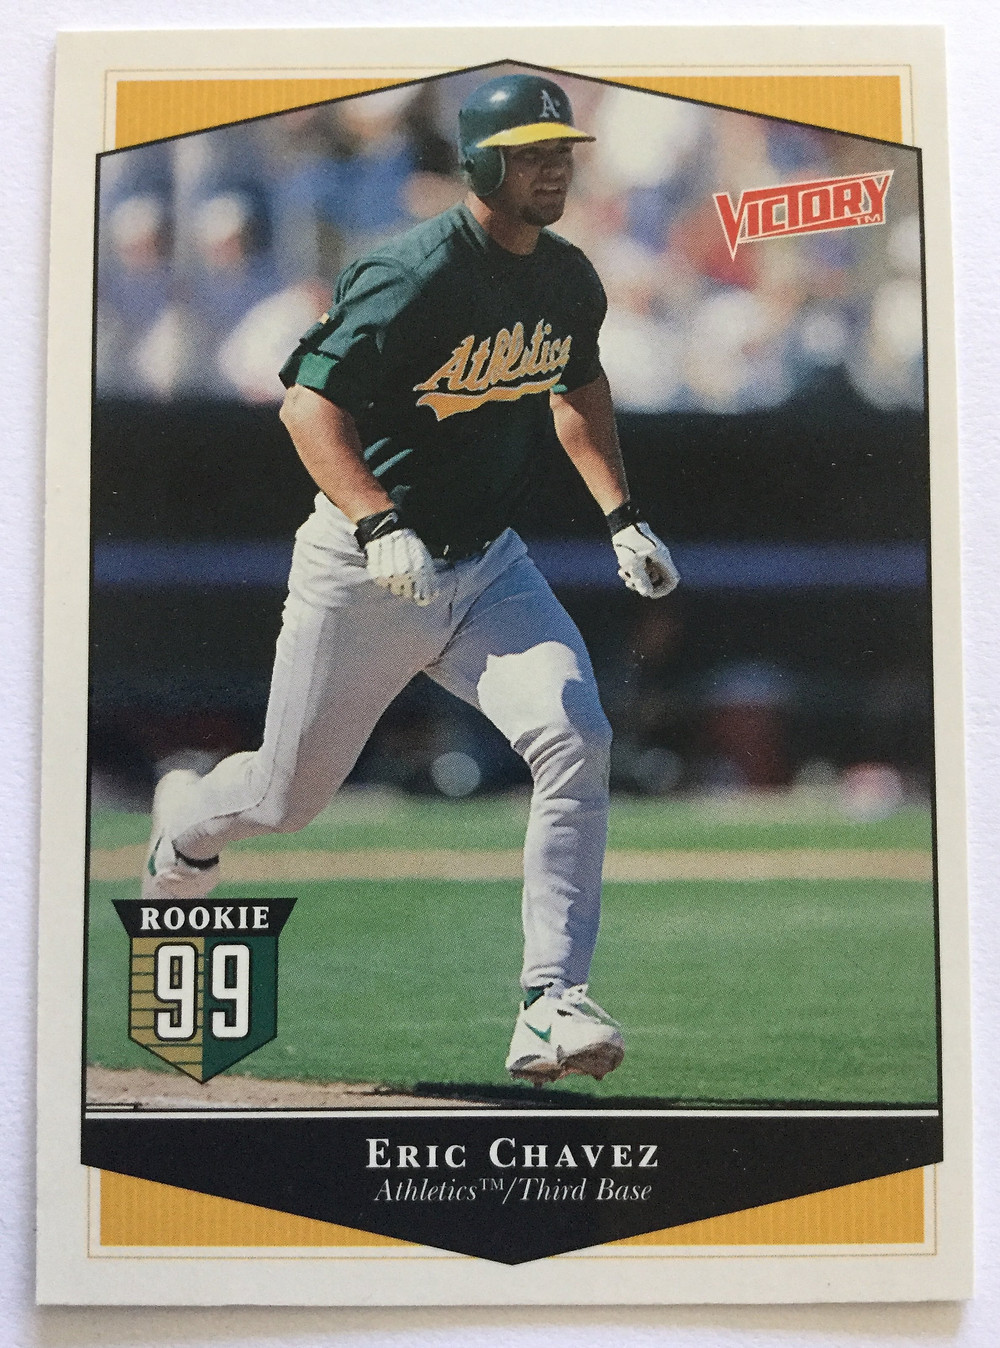 Eric Chavez. Victory Upper Deck, 1999.